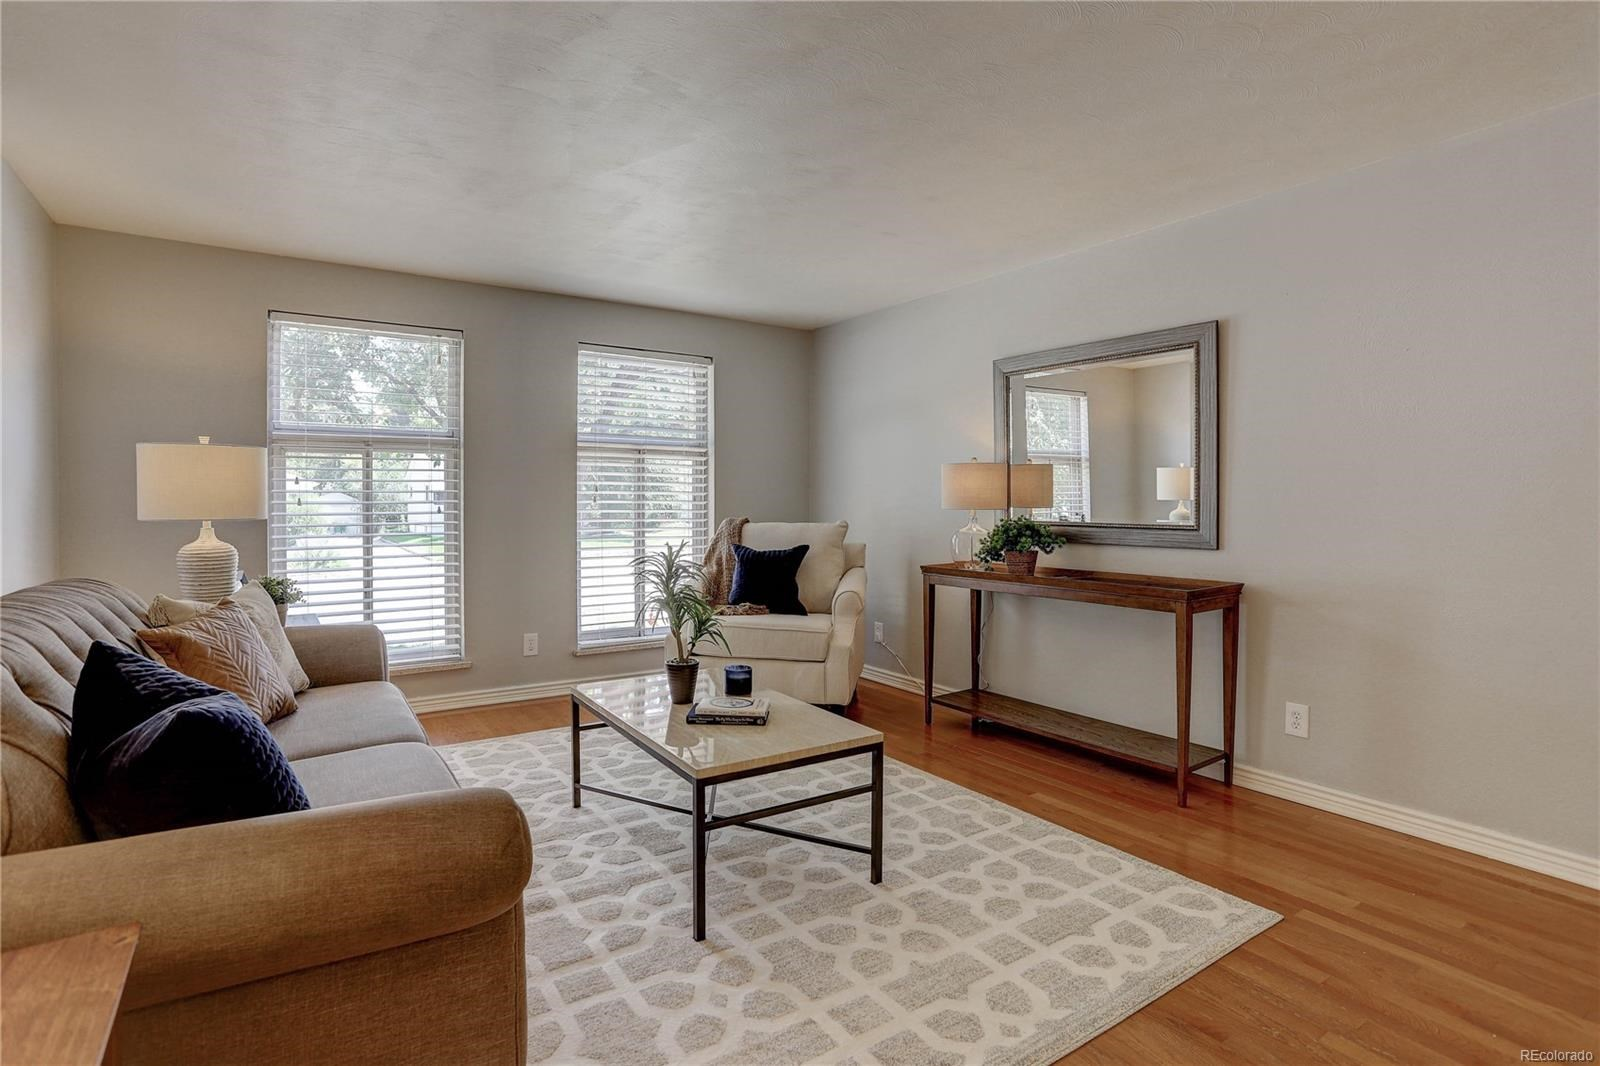 MLS# 2968148 - 10 - 2931 S Downing Street, Englewood, CO 80113